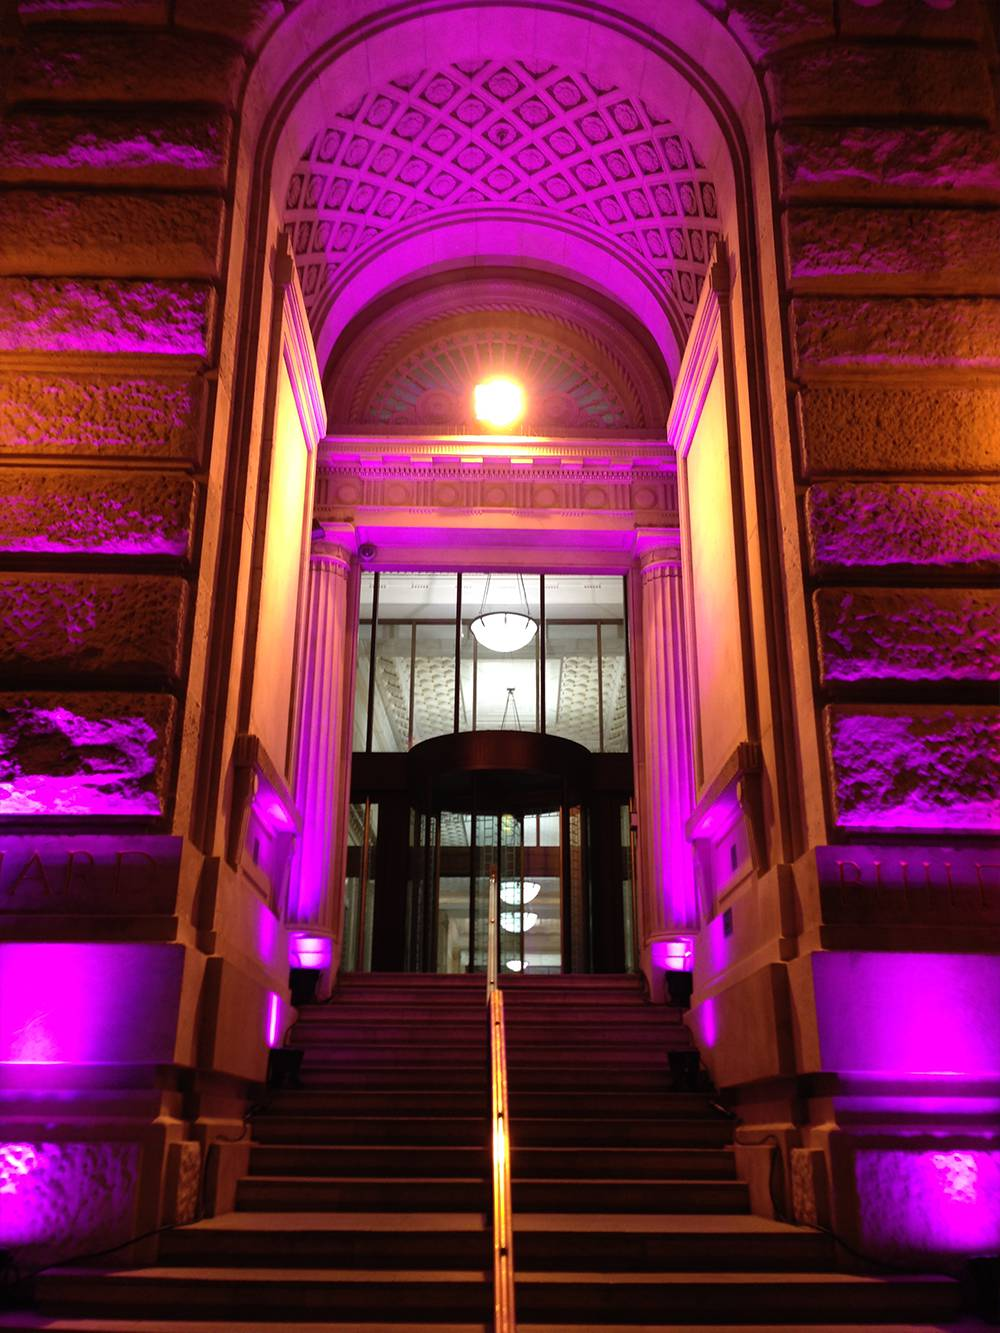 Lighting at the entrance of a fashion show at Cunard Building Liverpool